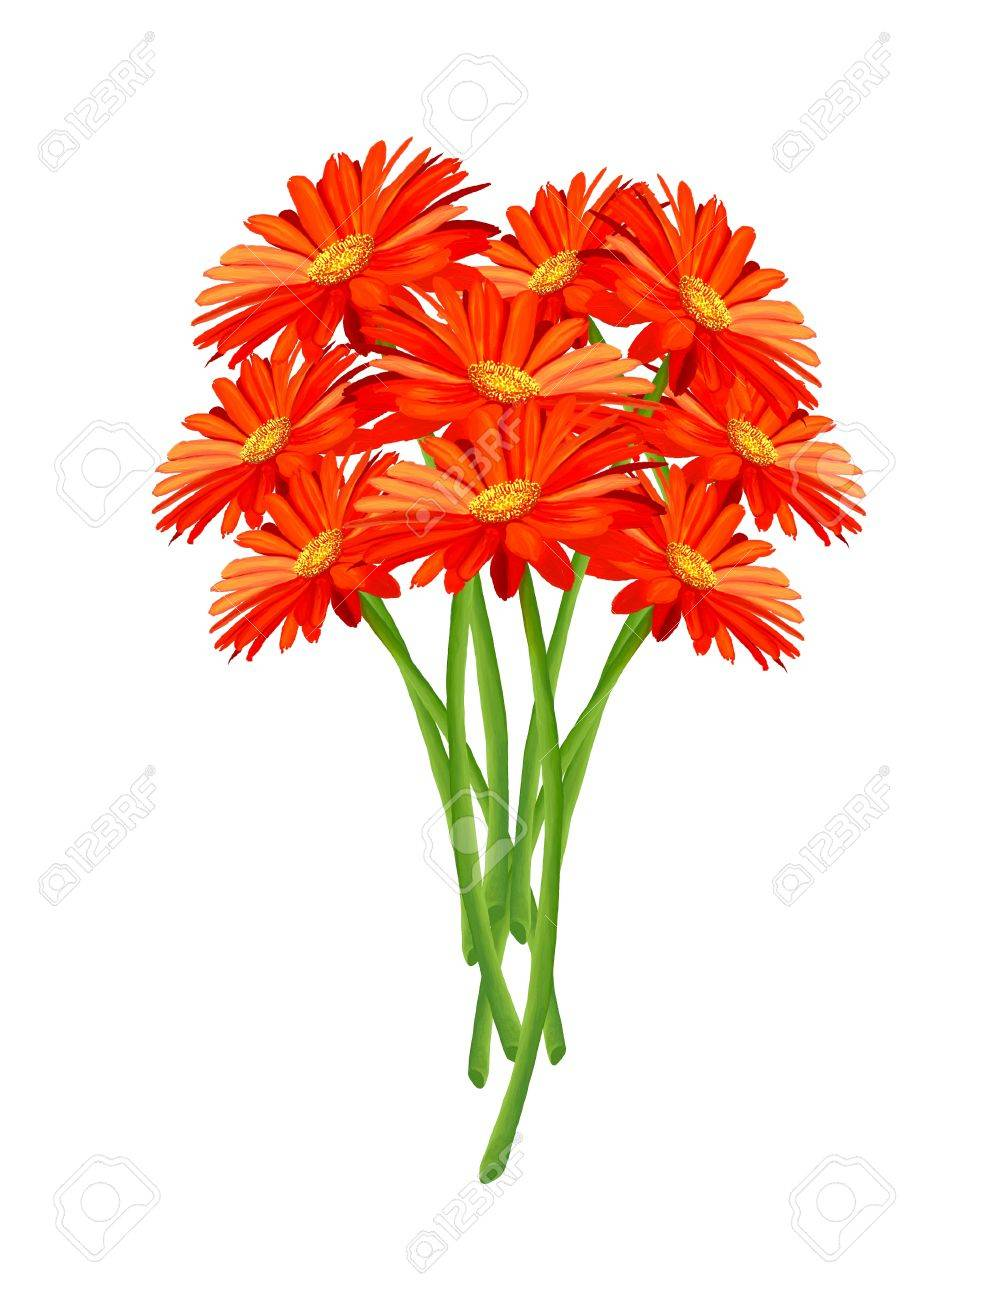 Hand Drawing, Close Up of A Bouquet of Bright and Beautiful Gerbera Daisy Isolated on White Background - 16119463